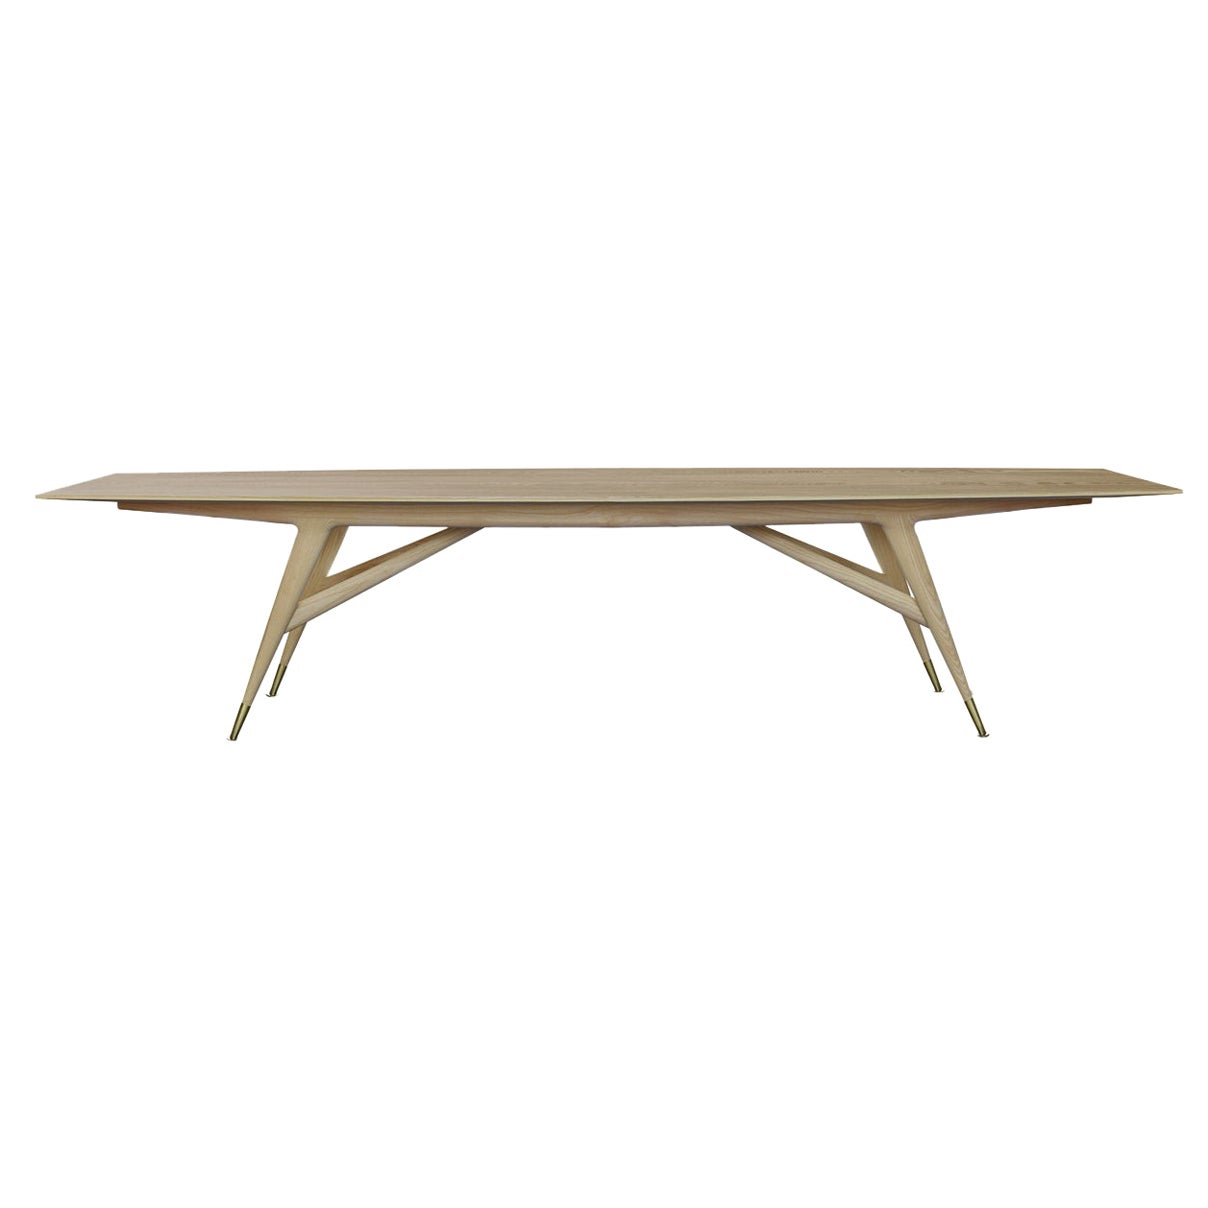 Molteni&C D.859.1A Dining or Conference Table in Ash Wood by Gio Ponti